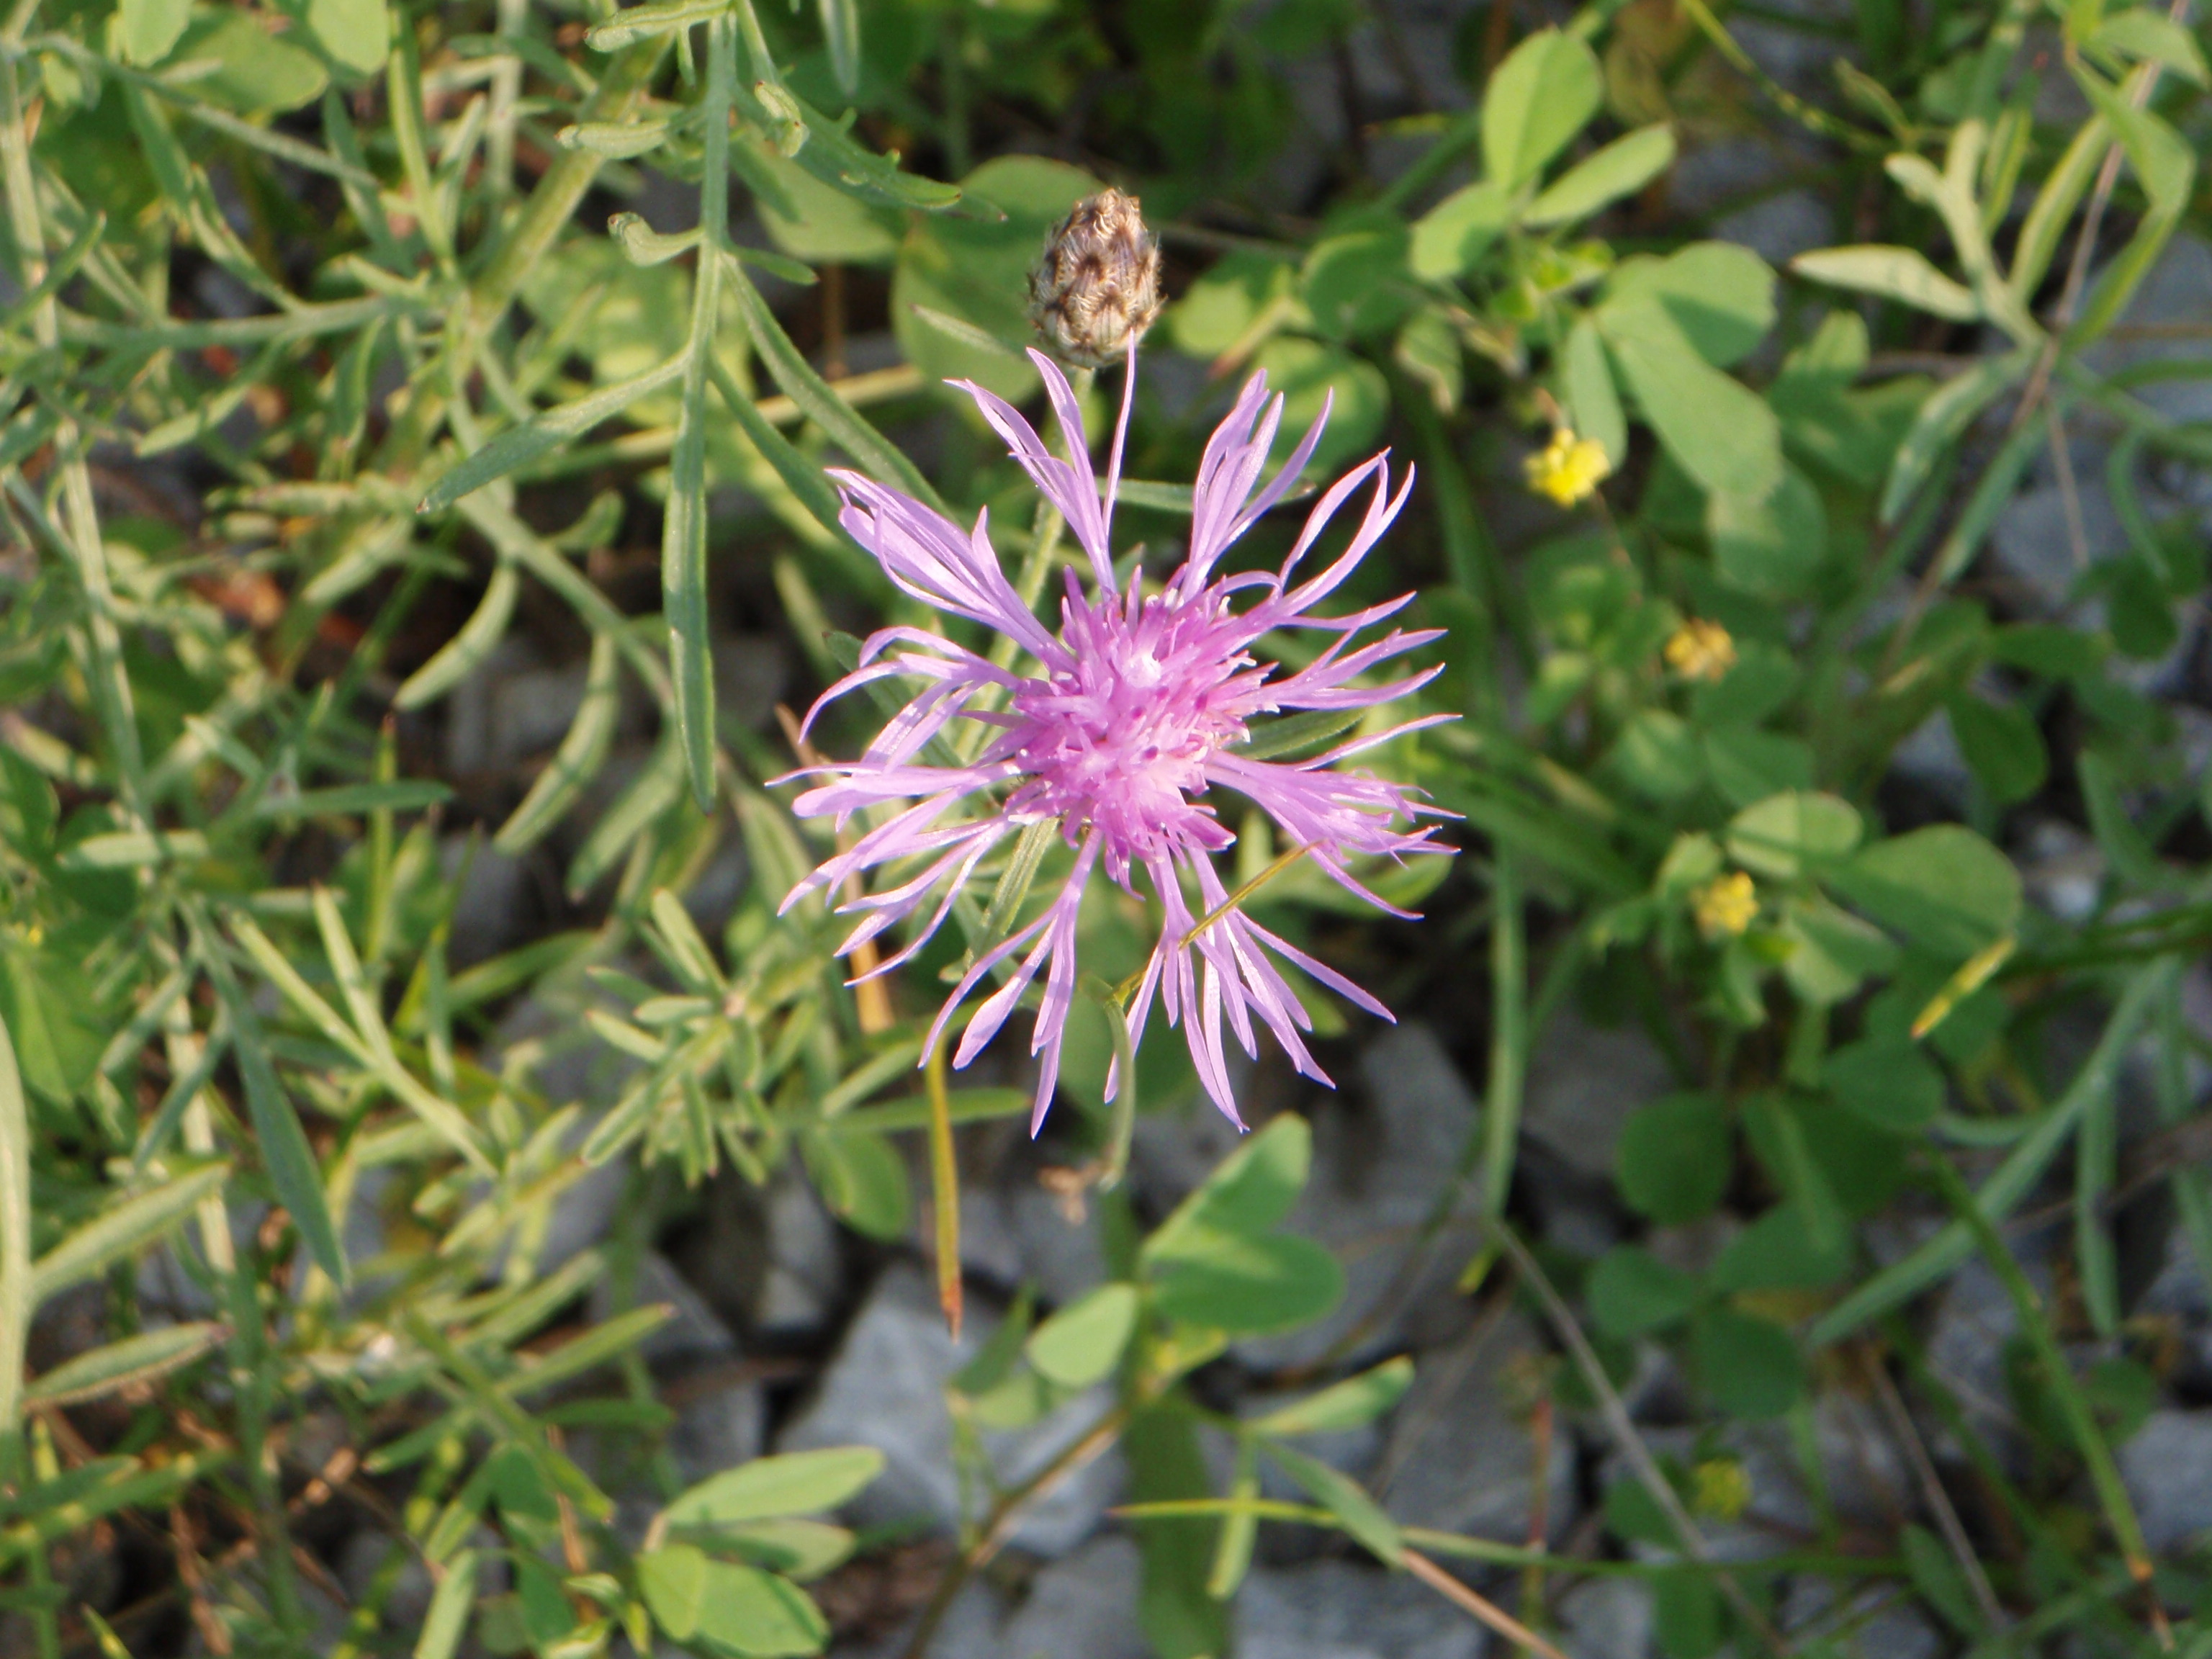 spotted knapweed flower.JPG